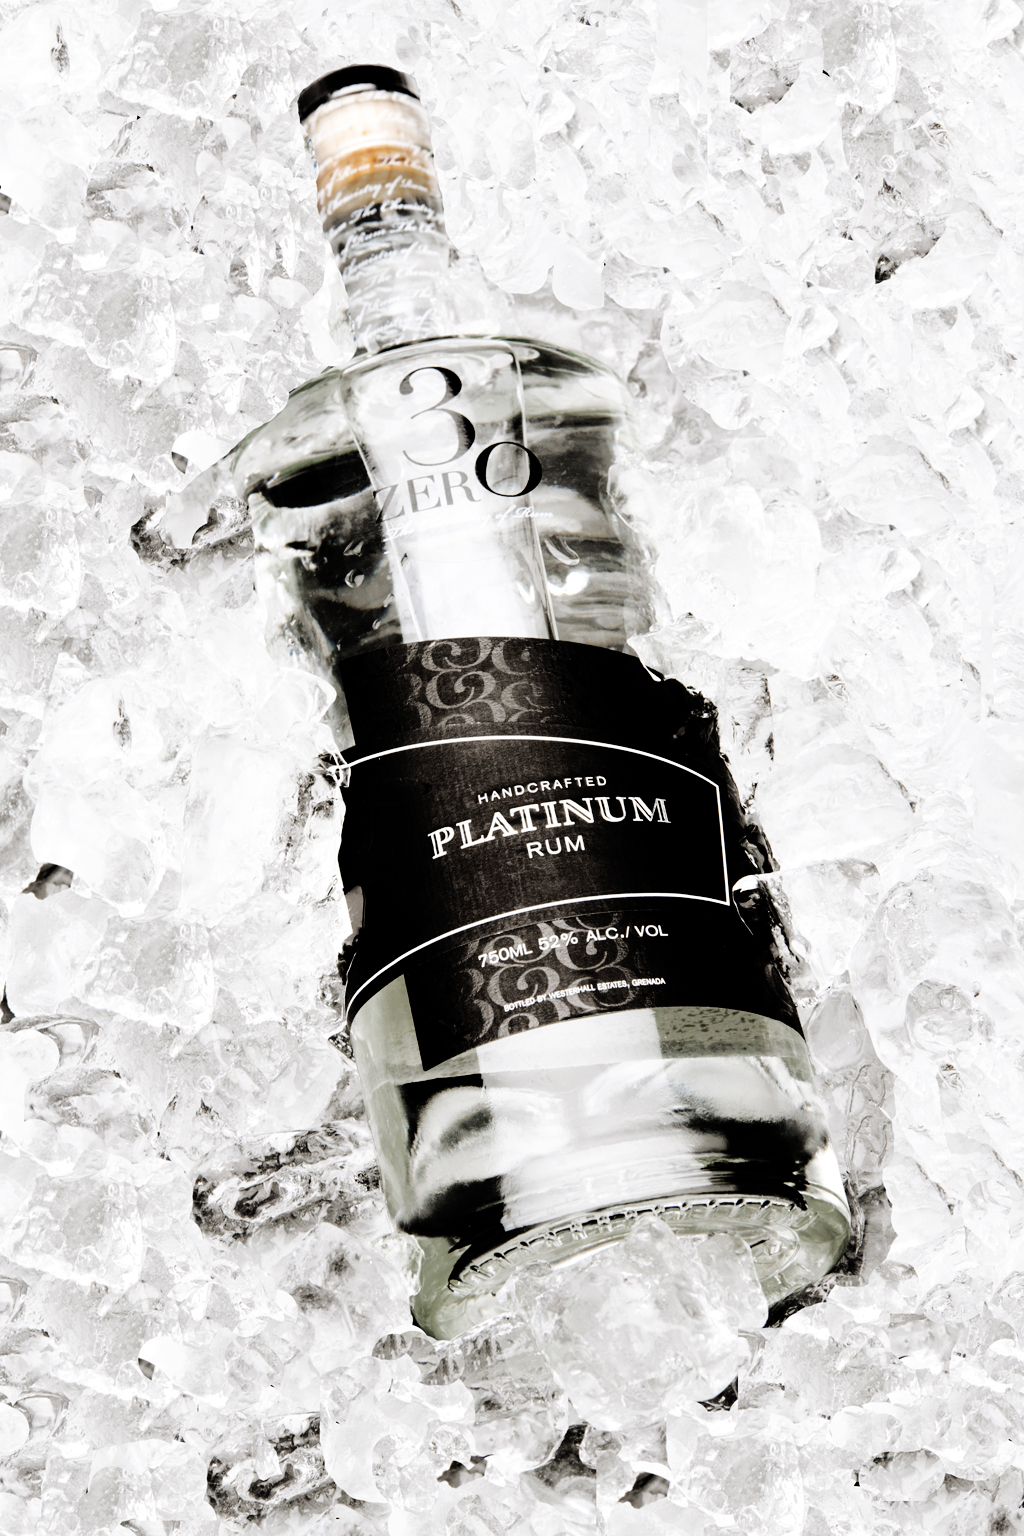 3ZERO Platinum on ice